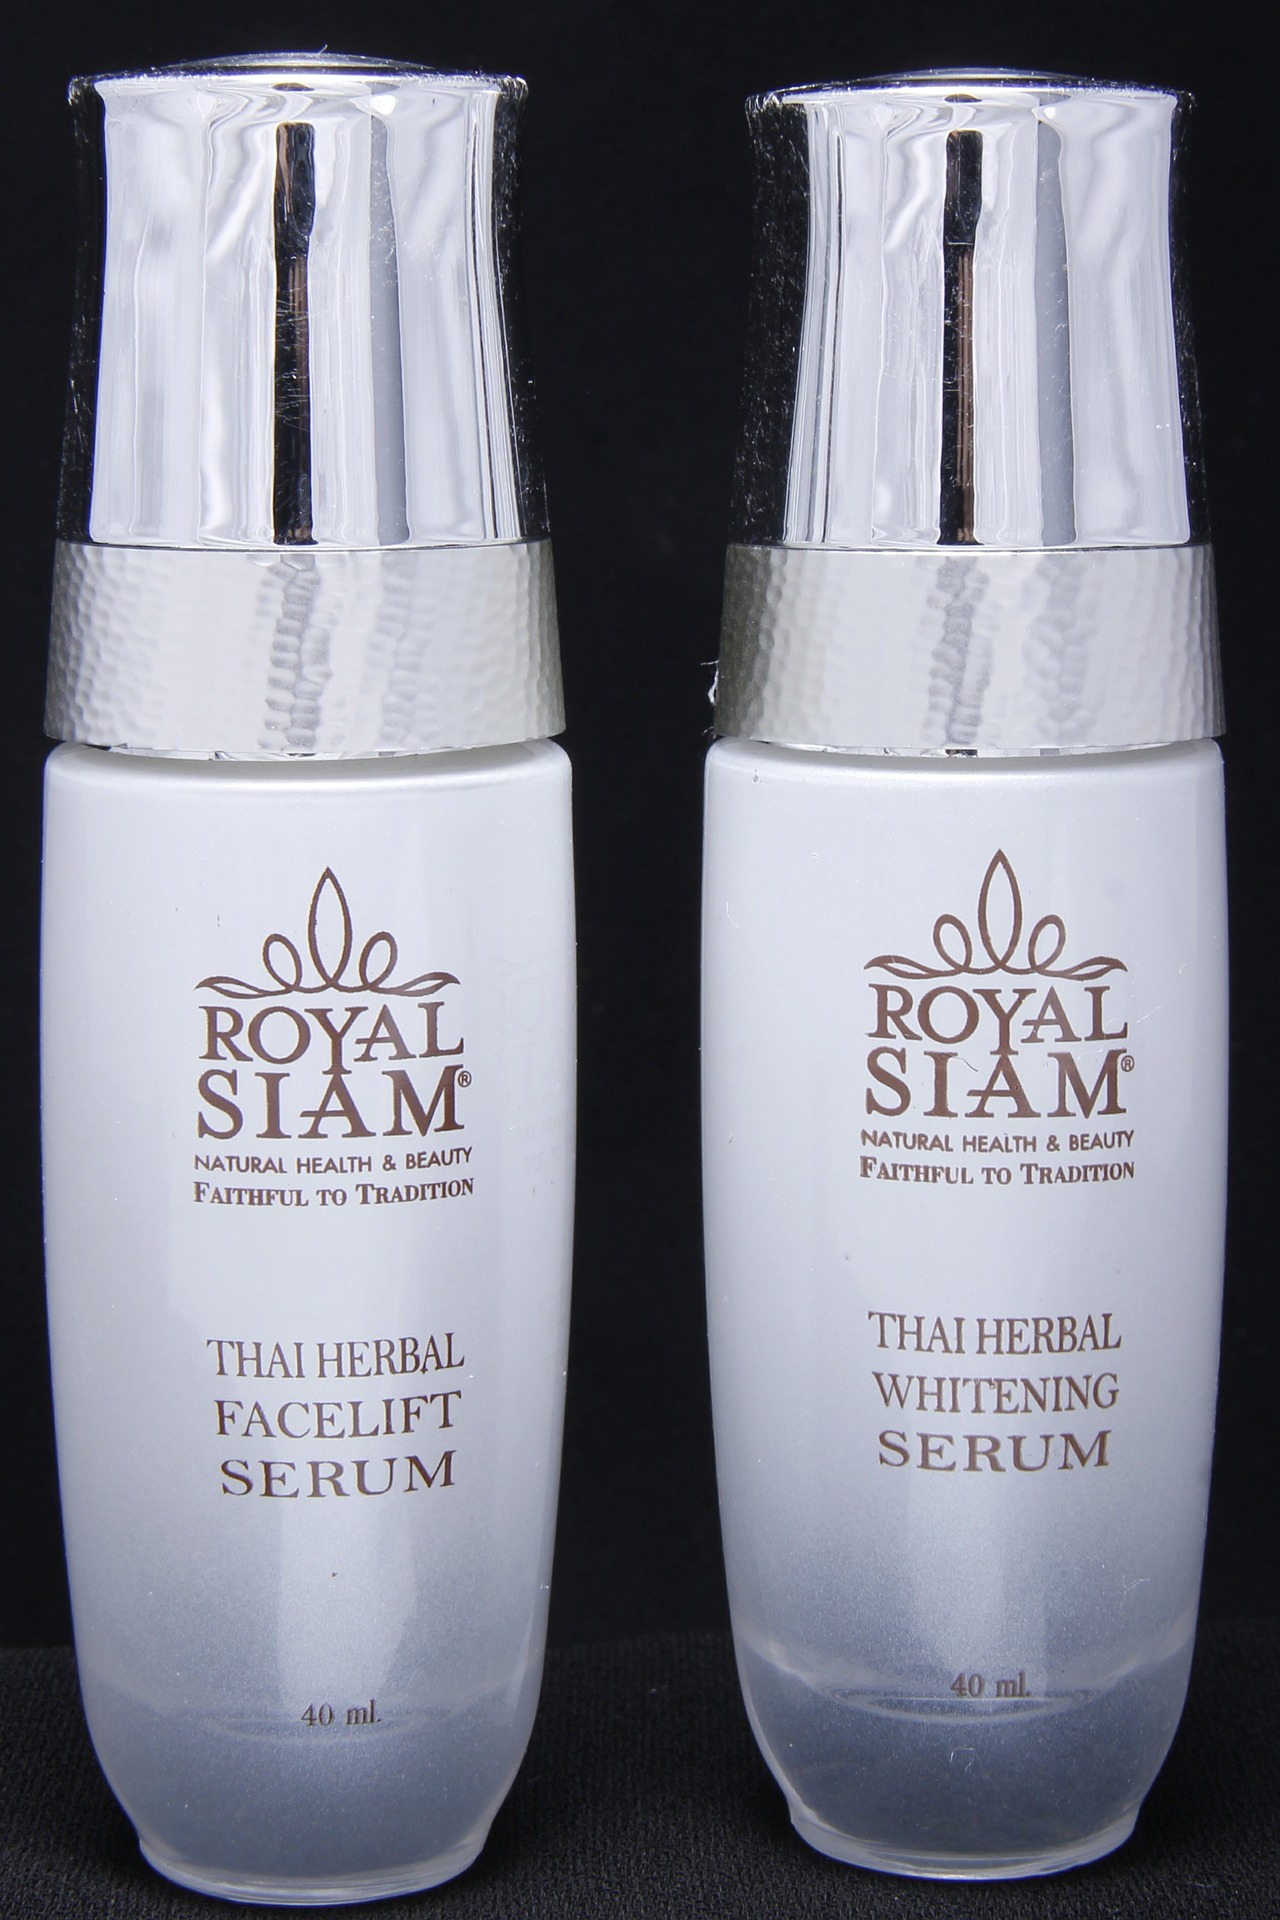 Thai Cosmetics produced the best face serum